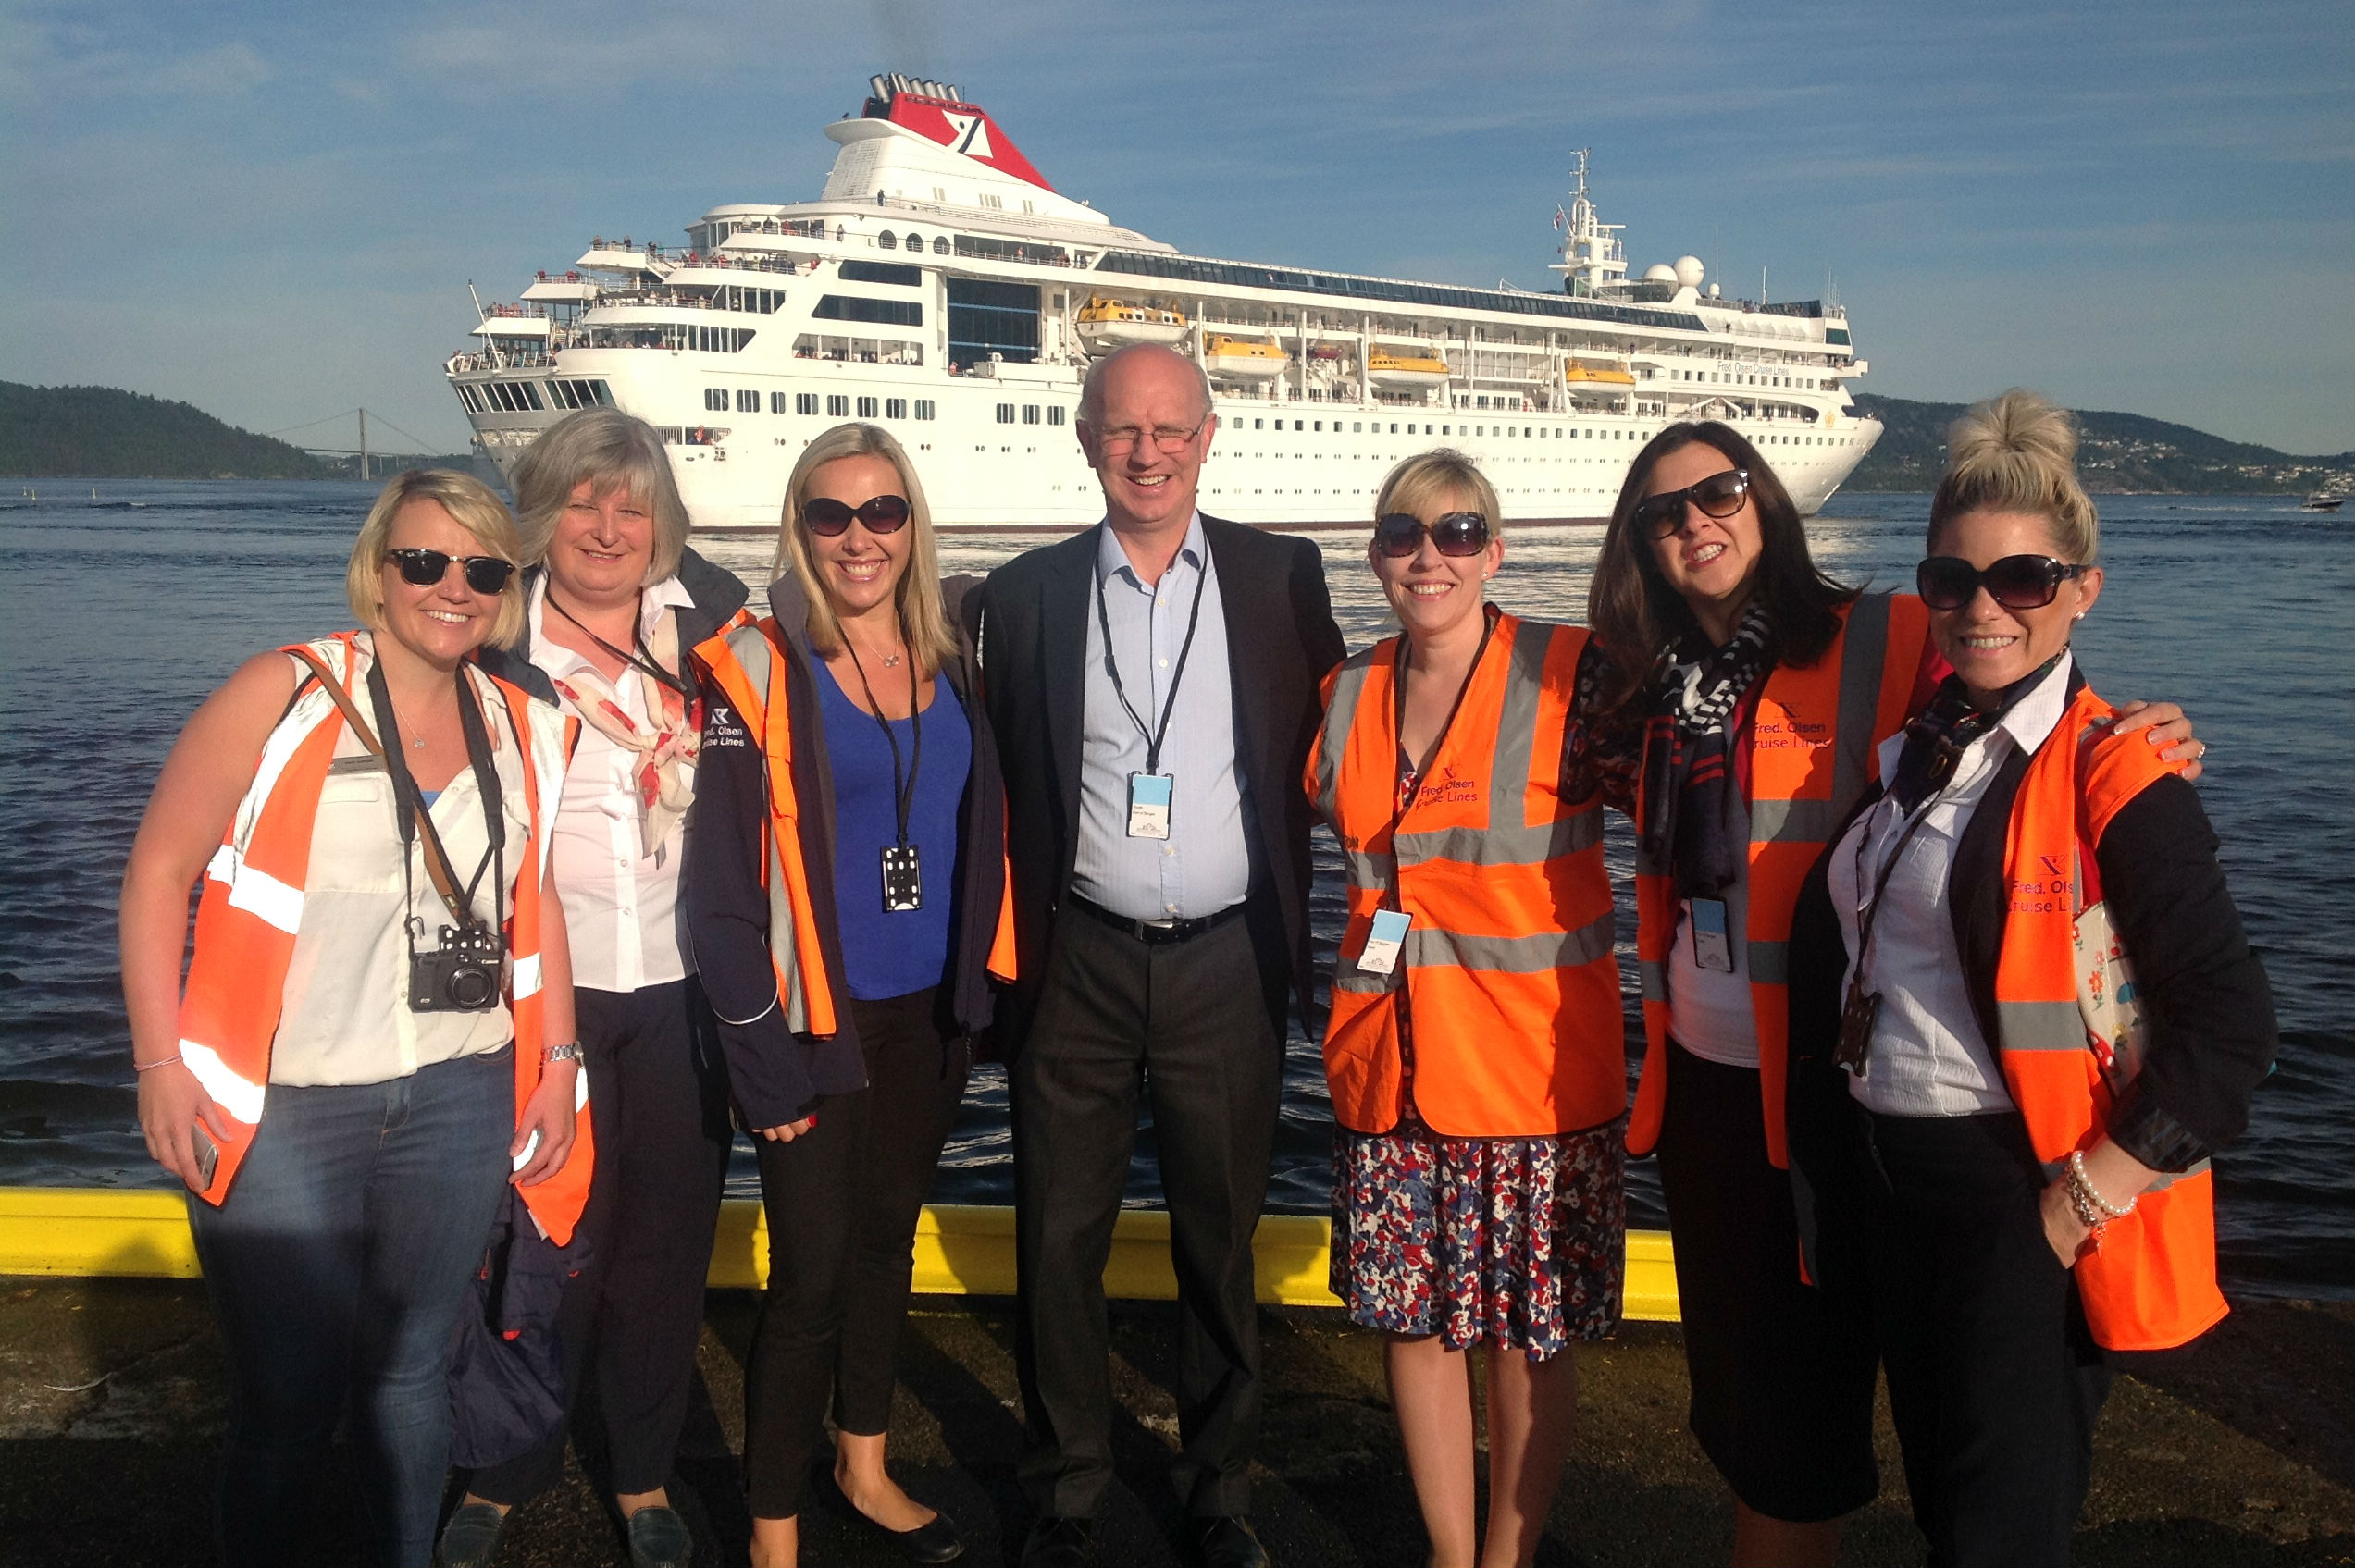 'I'm sure I'll keep an eye on the cruise industry'